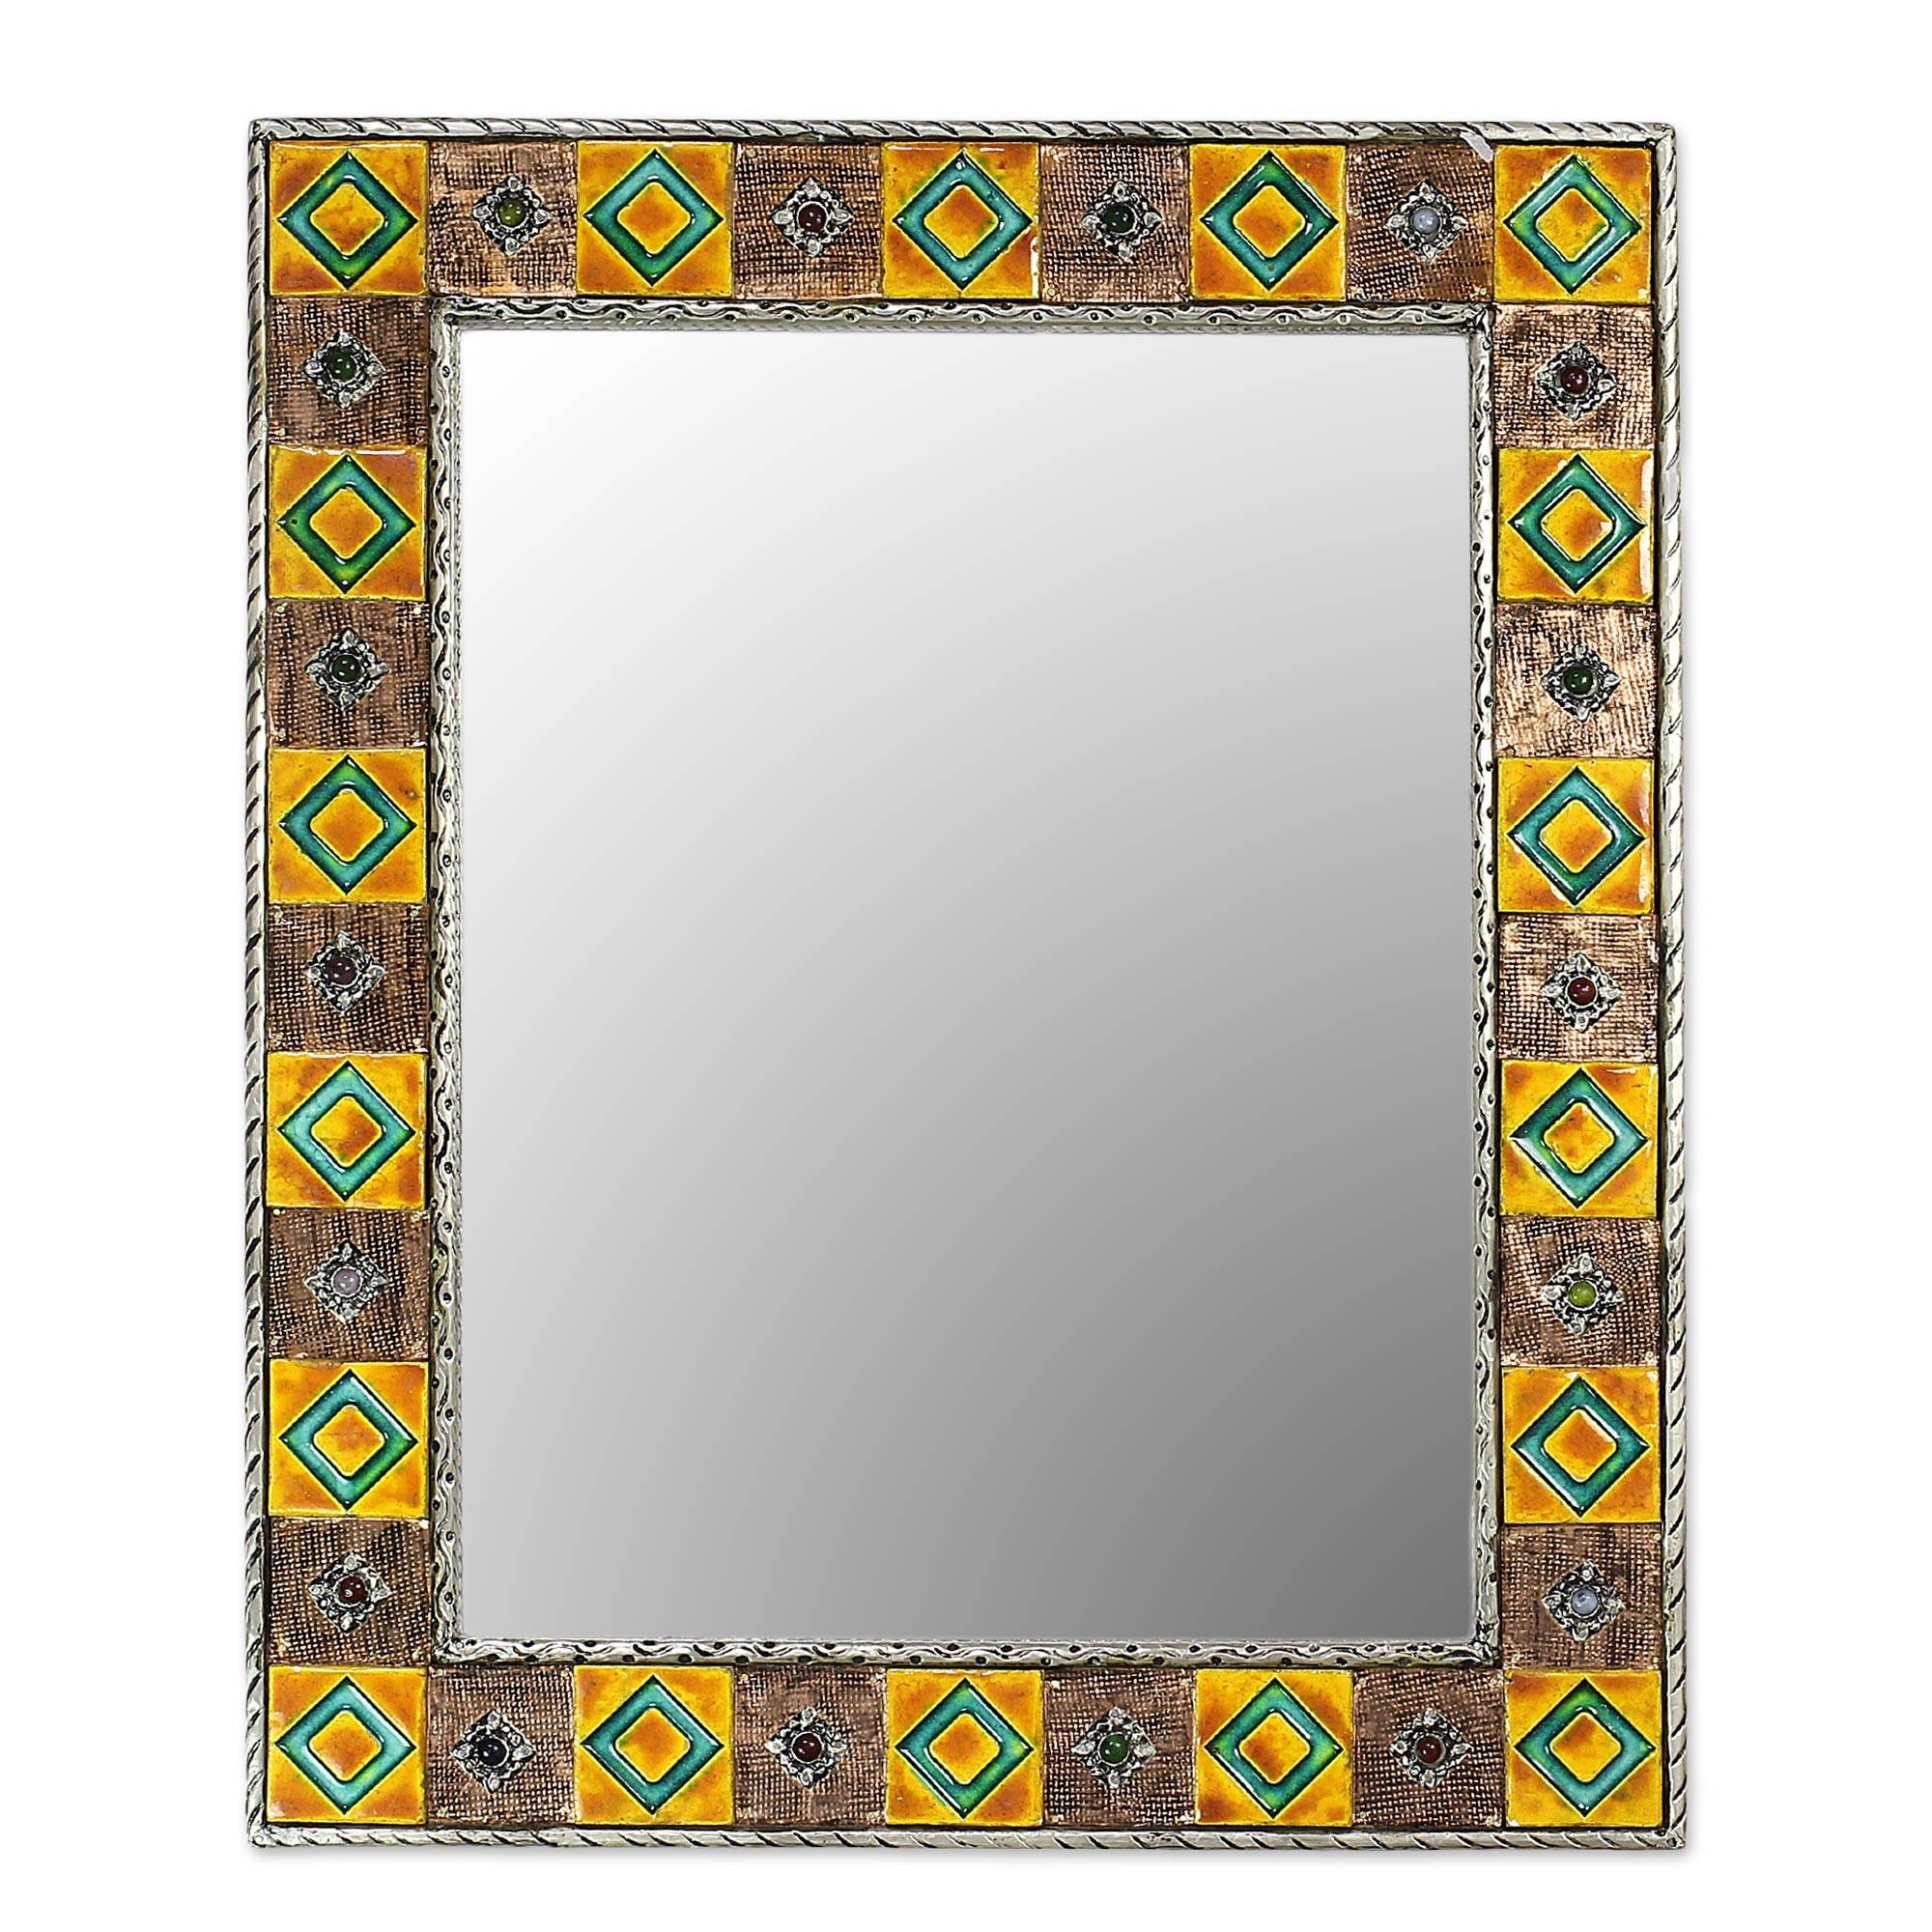 Mirrors From India - Indian Mirror Collection At Novica intended for Heart Shaped Mirrors For Walls (Image 13 of 15)